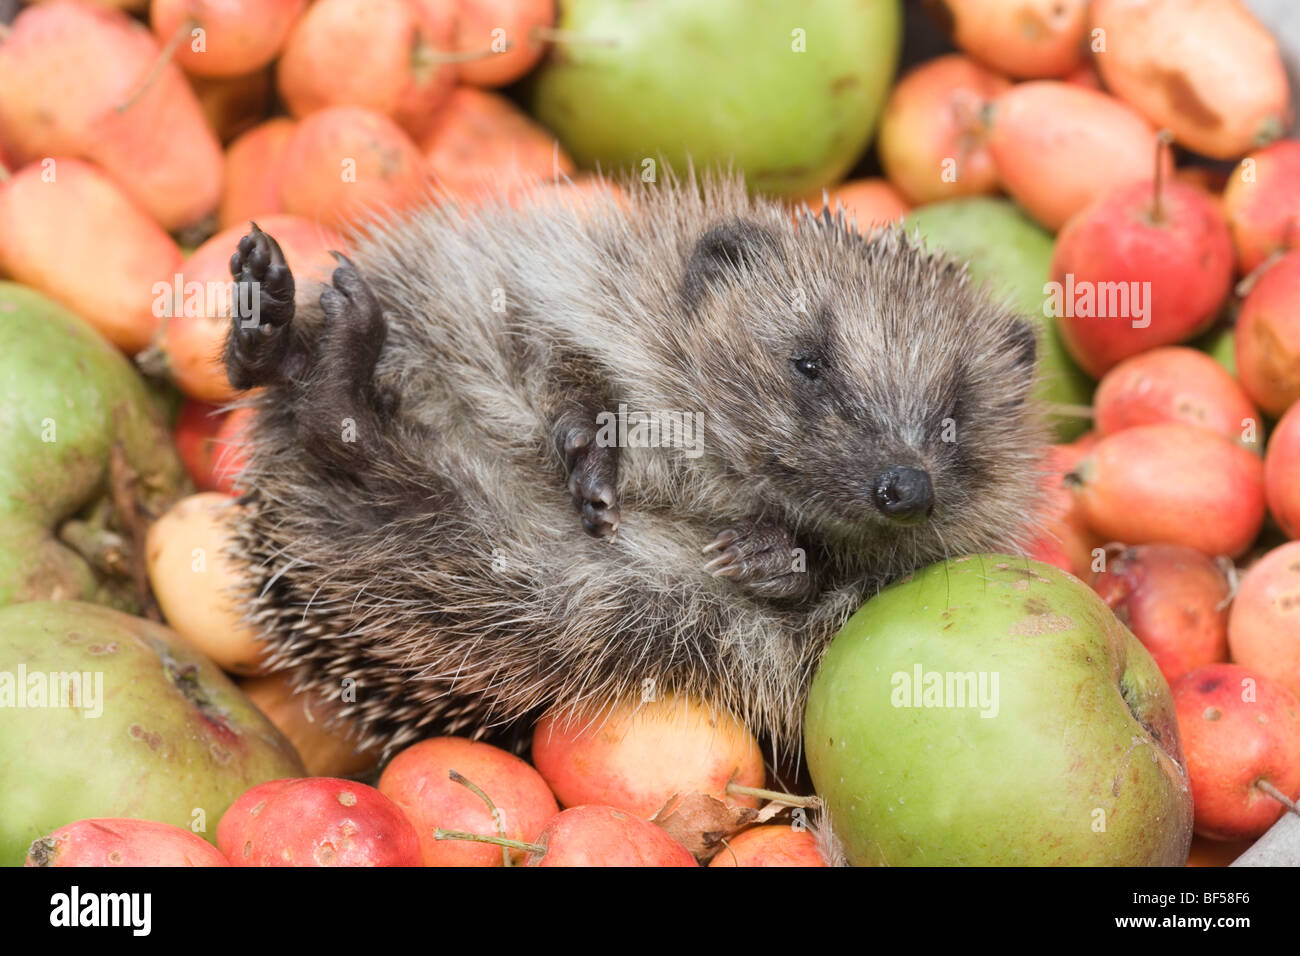 European Hedgehog (Erinaceus europaeus). Uncurling, unrolling amongst collected fallen apples, revealing soft hairy - Stock Image